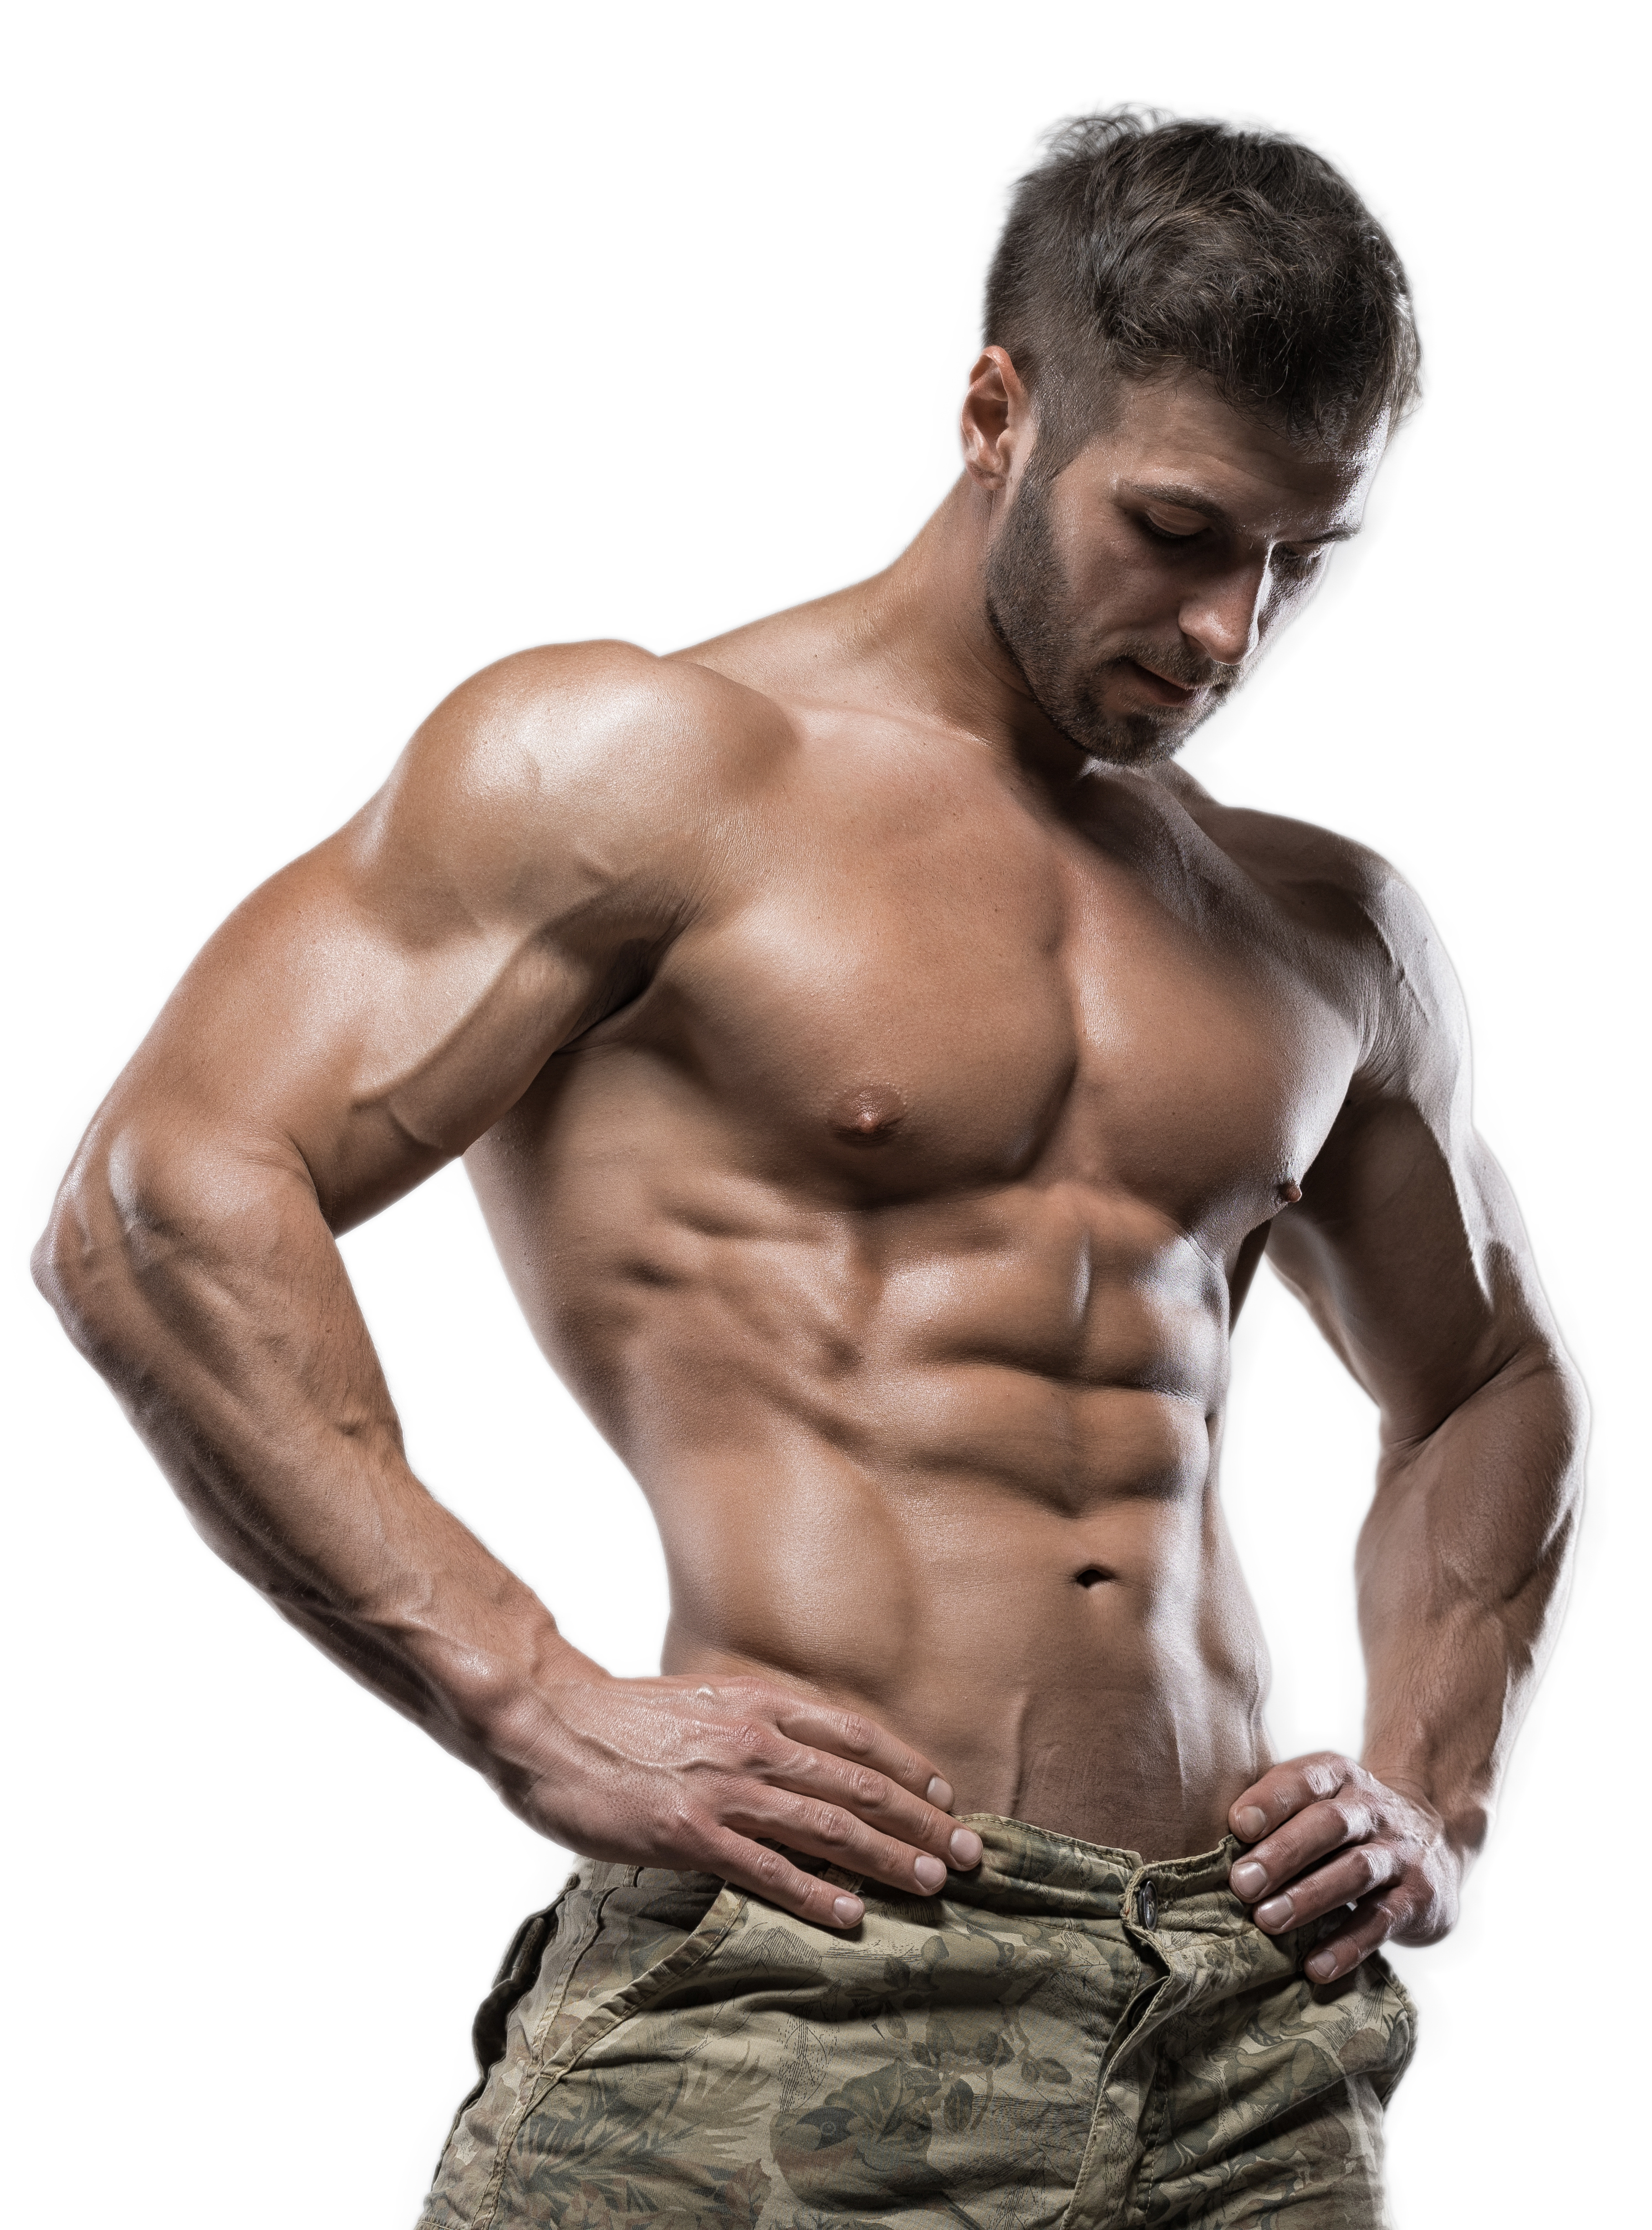 Now Imagine For A Second You Decide To Put Yourself First Today And Give Anabolic Stretching Your Best Shot Download The Entire